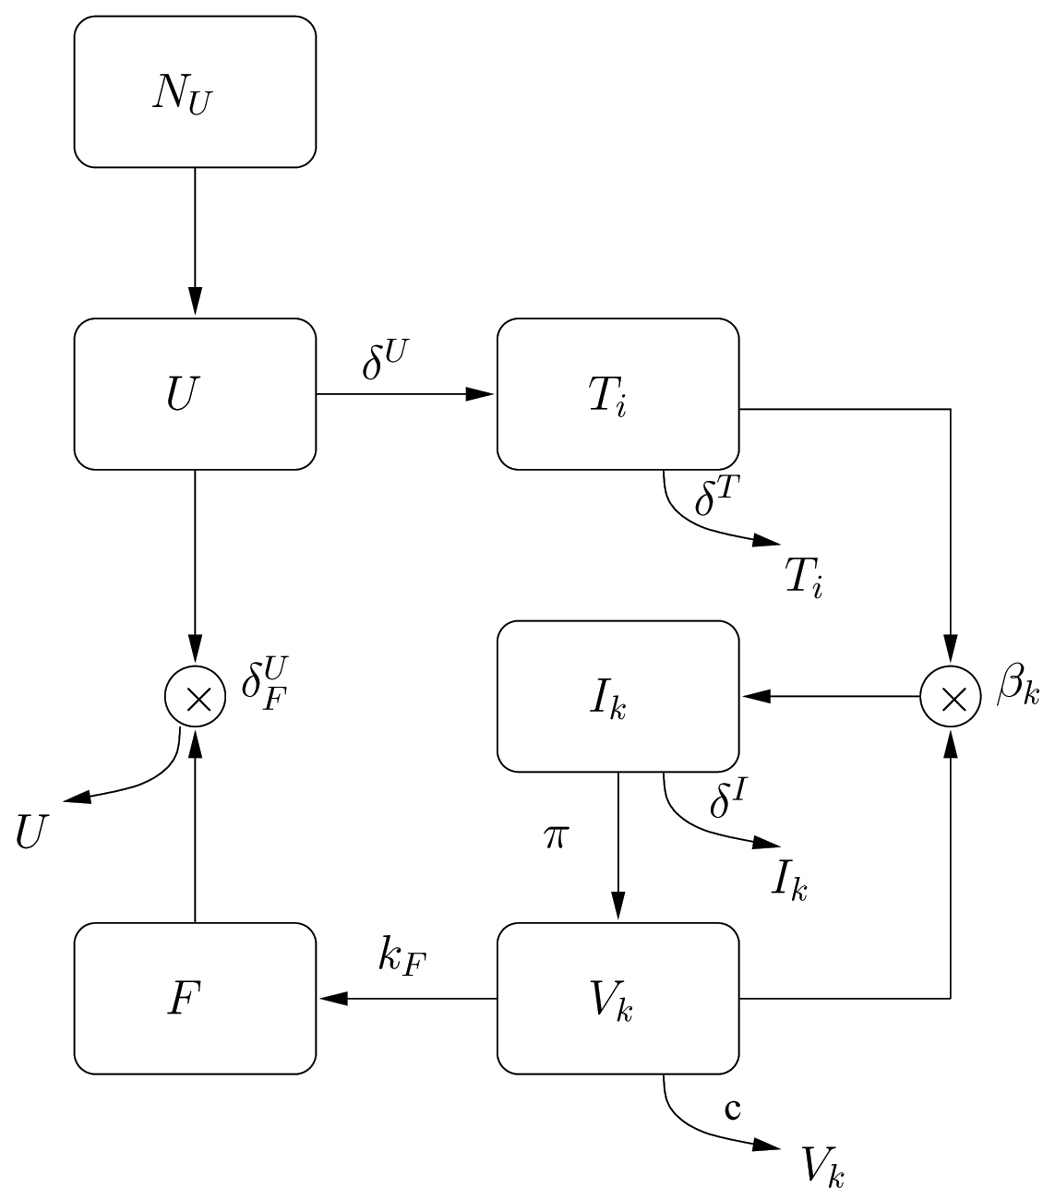 http://static-content.springer.com/image/art%3A10.1186%2F1471-2148-7-S2-S5/MediaObjects/12862_2007_Article_561_Fig2_HTML.jpg